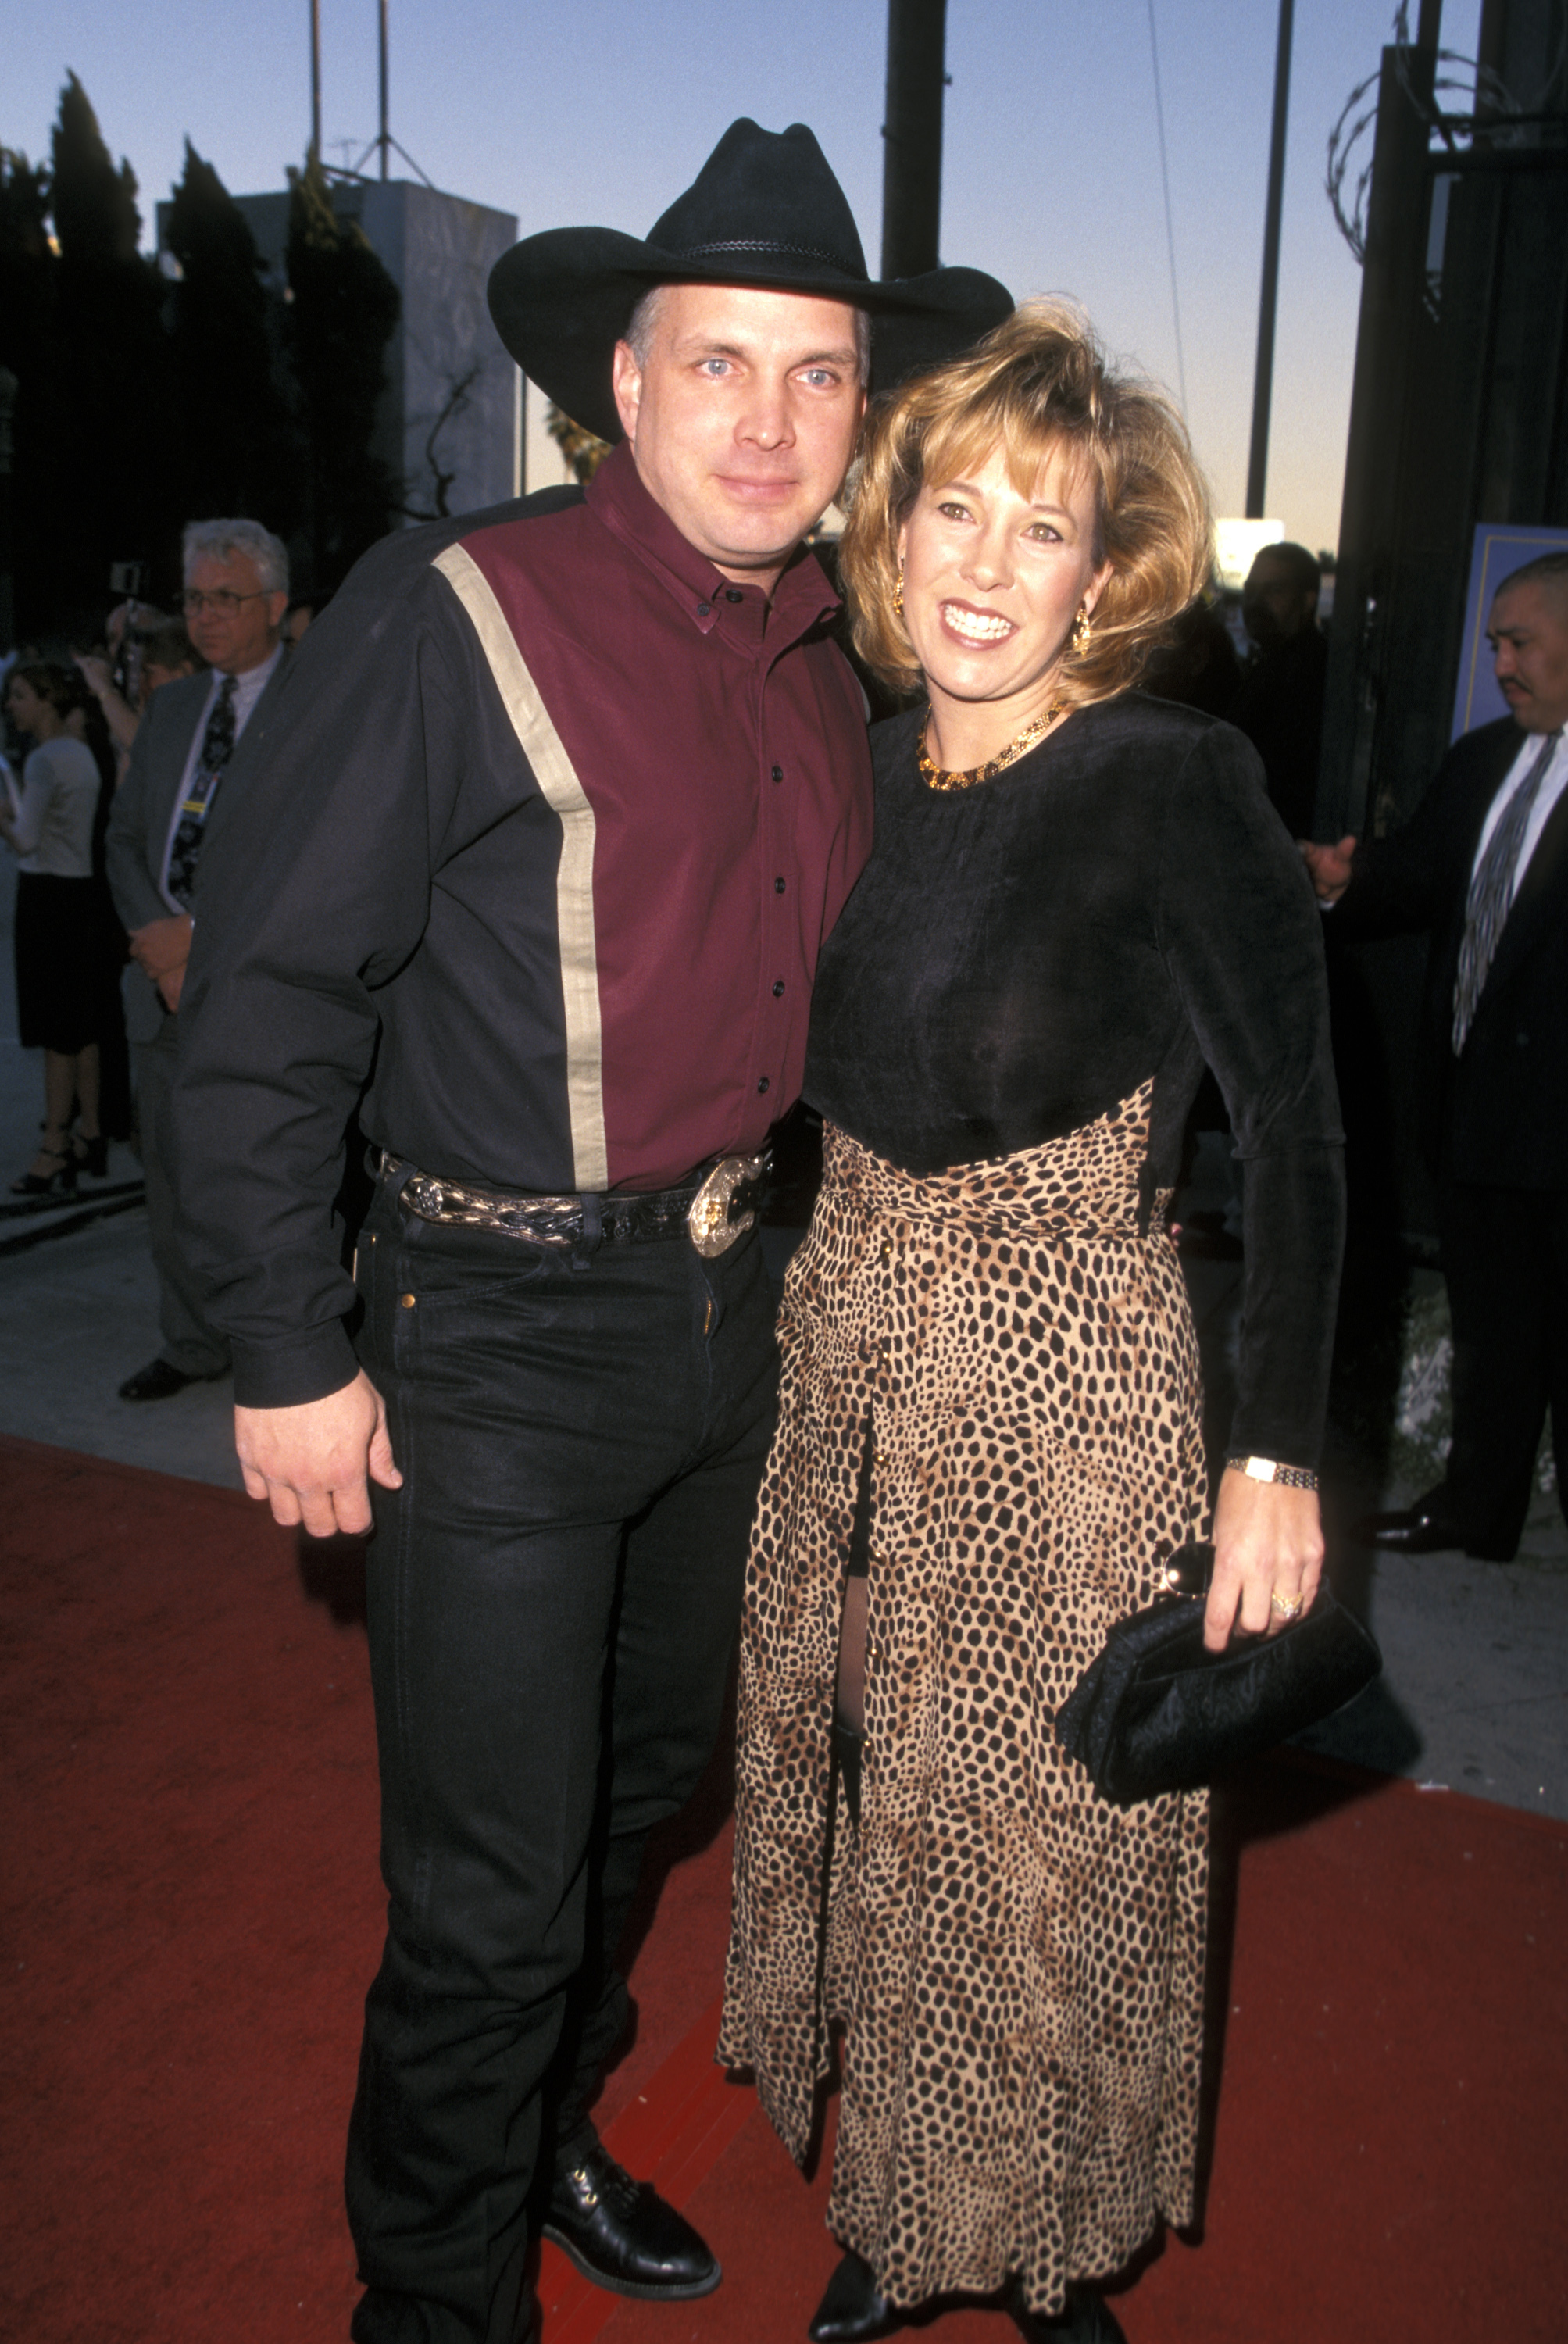 garth brooks and ex wife sandy mahl